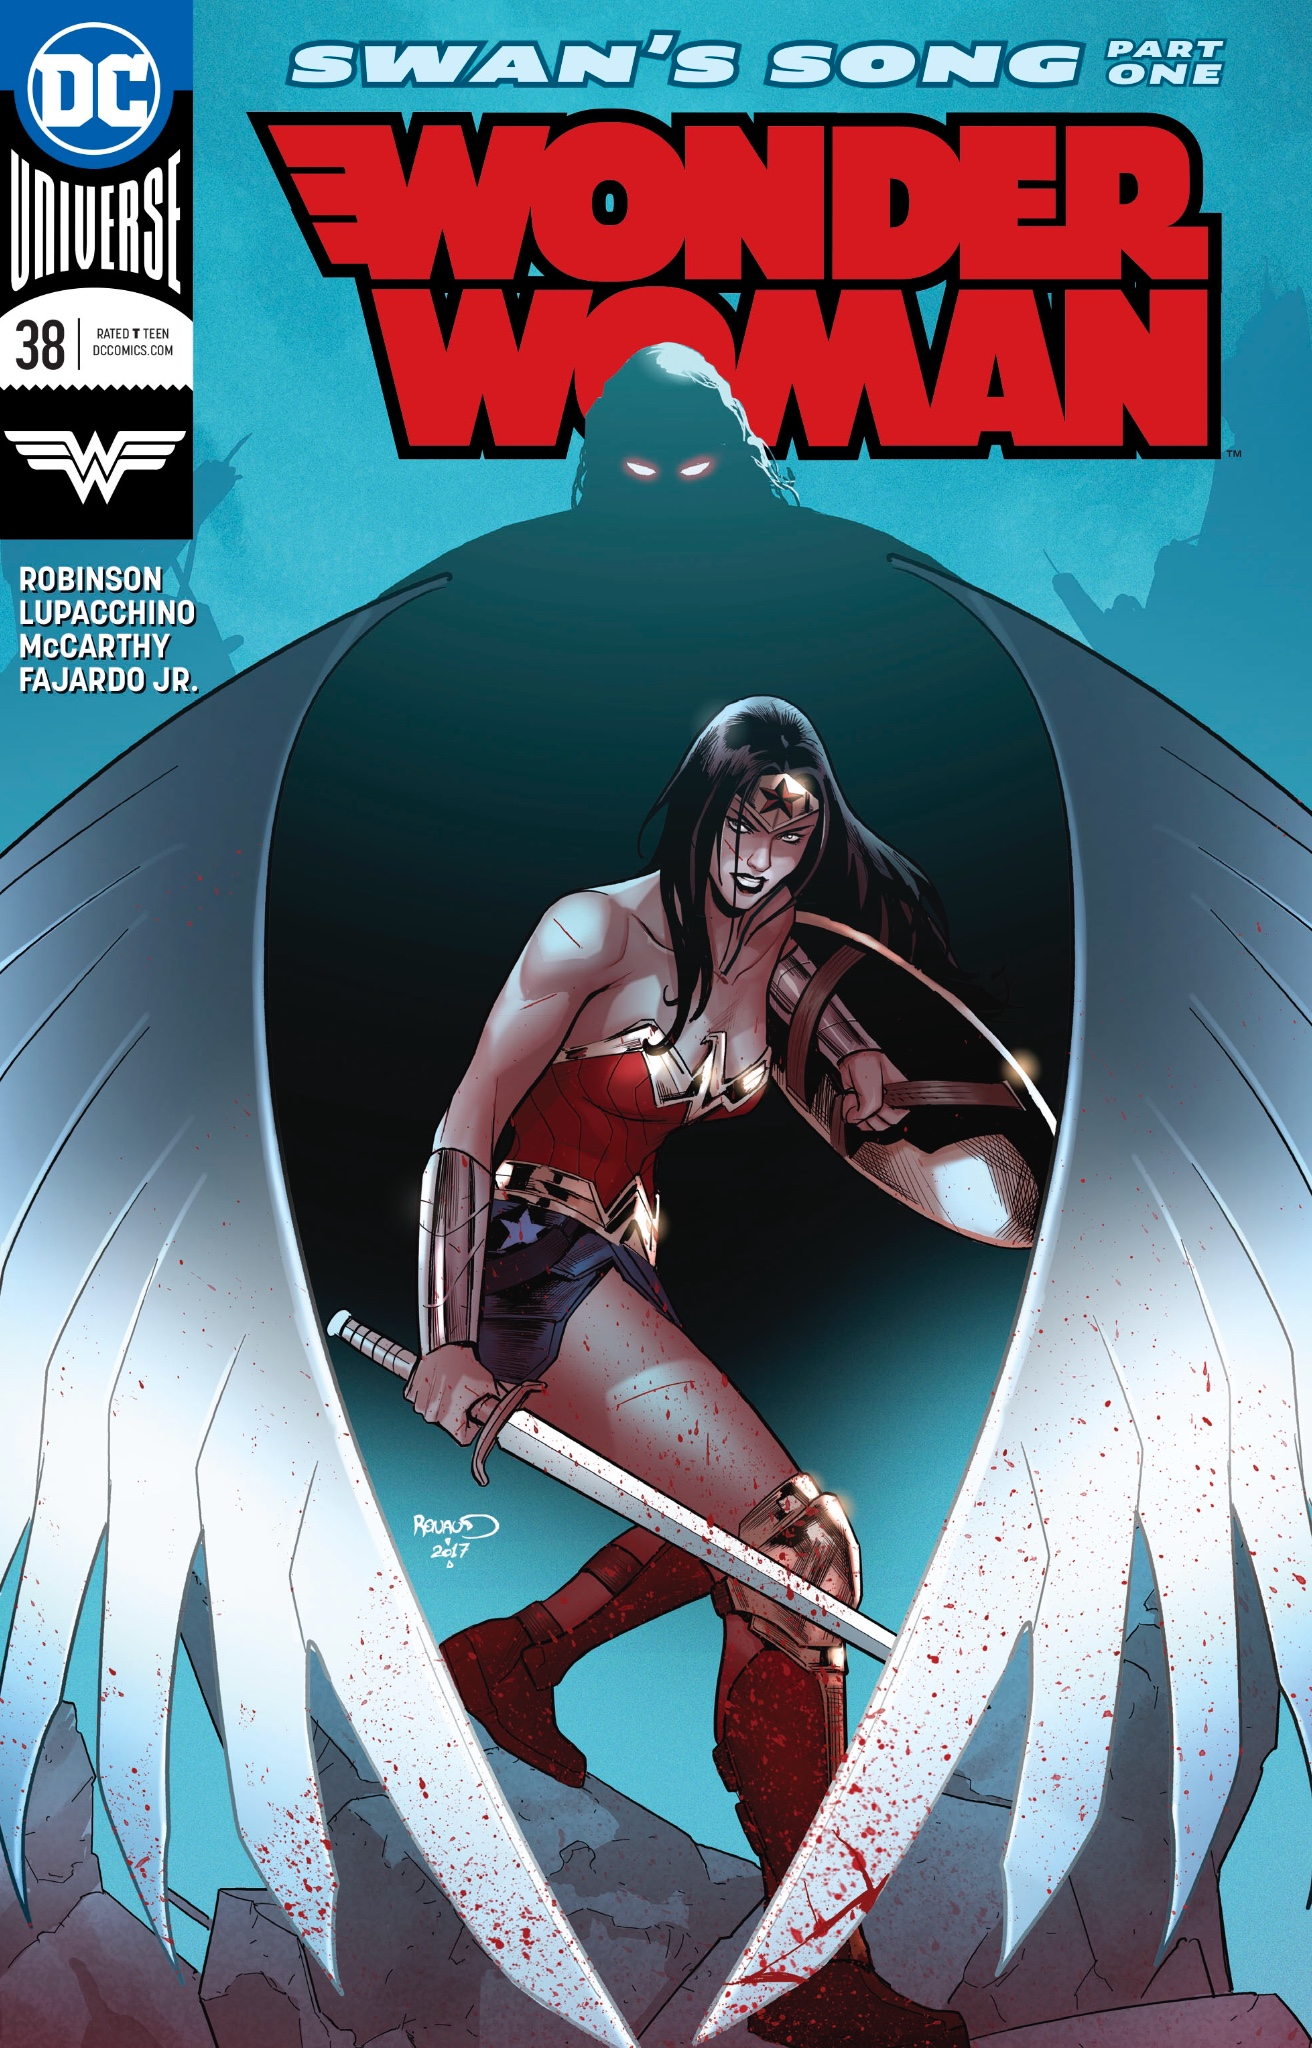 Wonder Woman #38: Swan's Song part 1